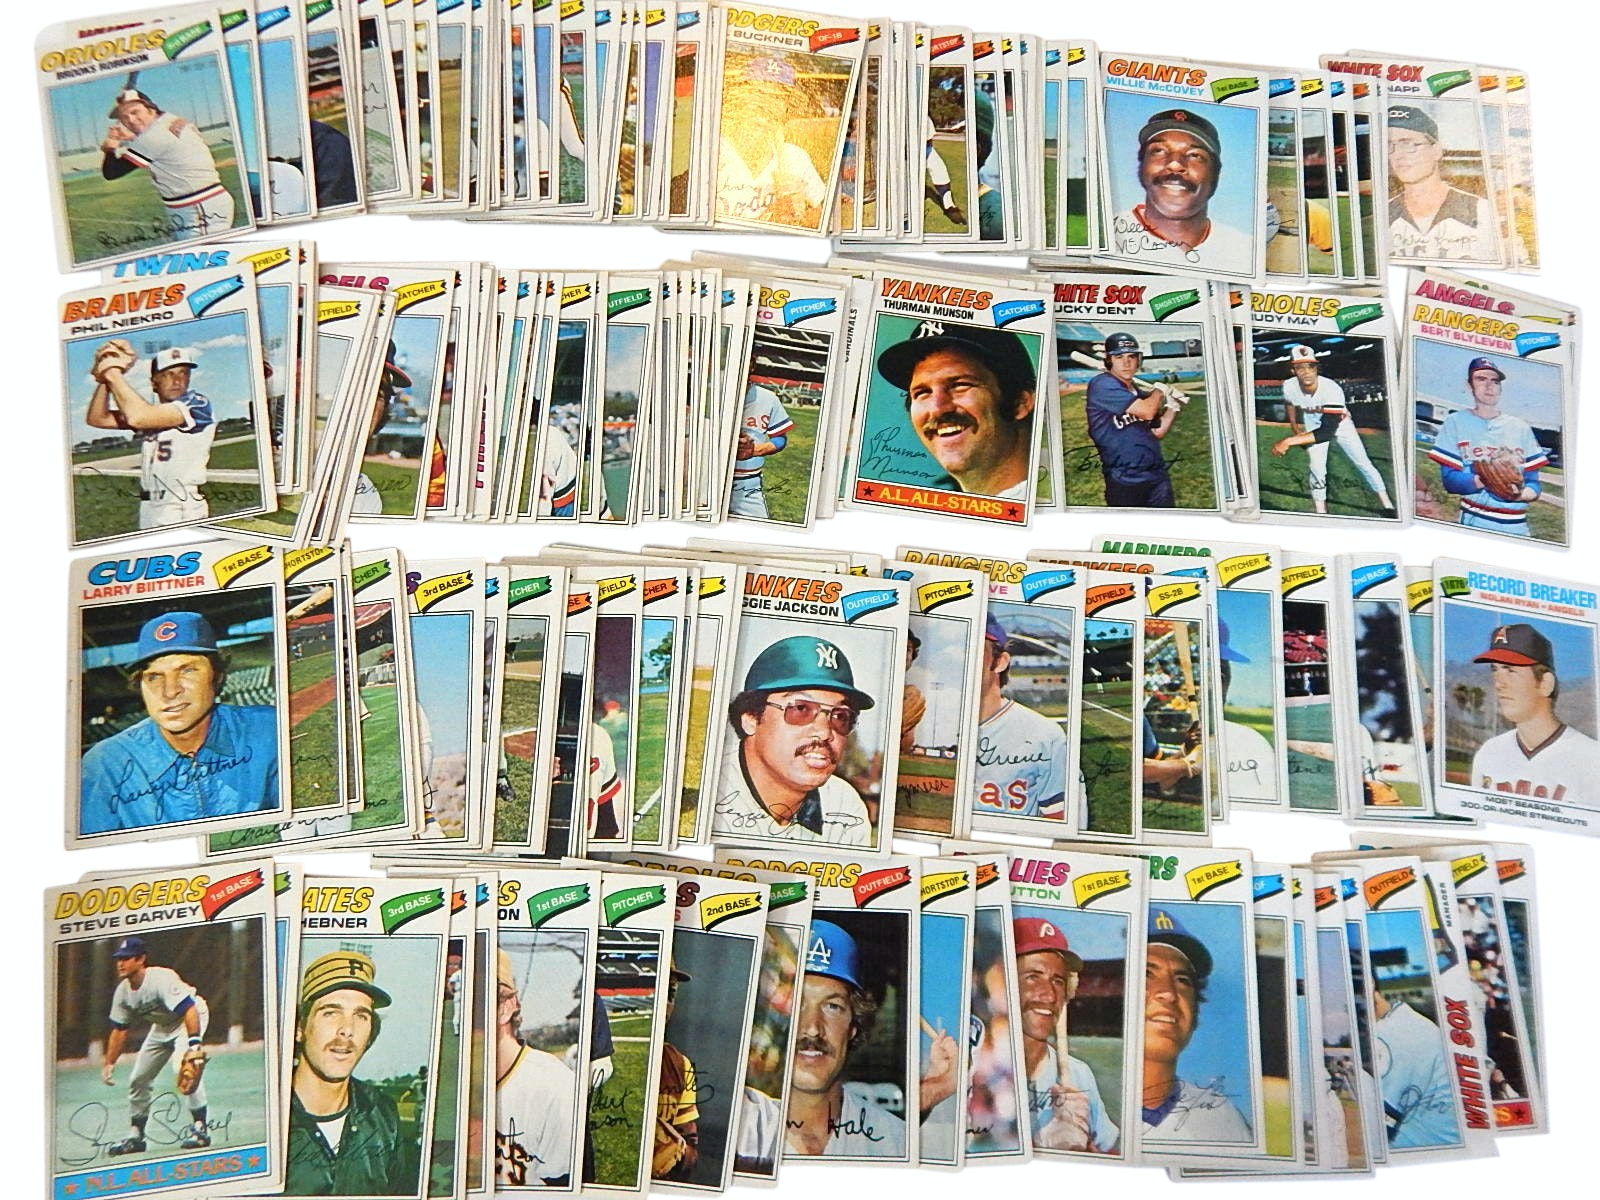 1977 Topps Baseball Card Collection with Munson, Jackson, Garvey and More